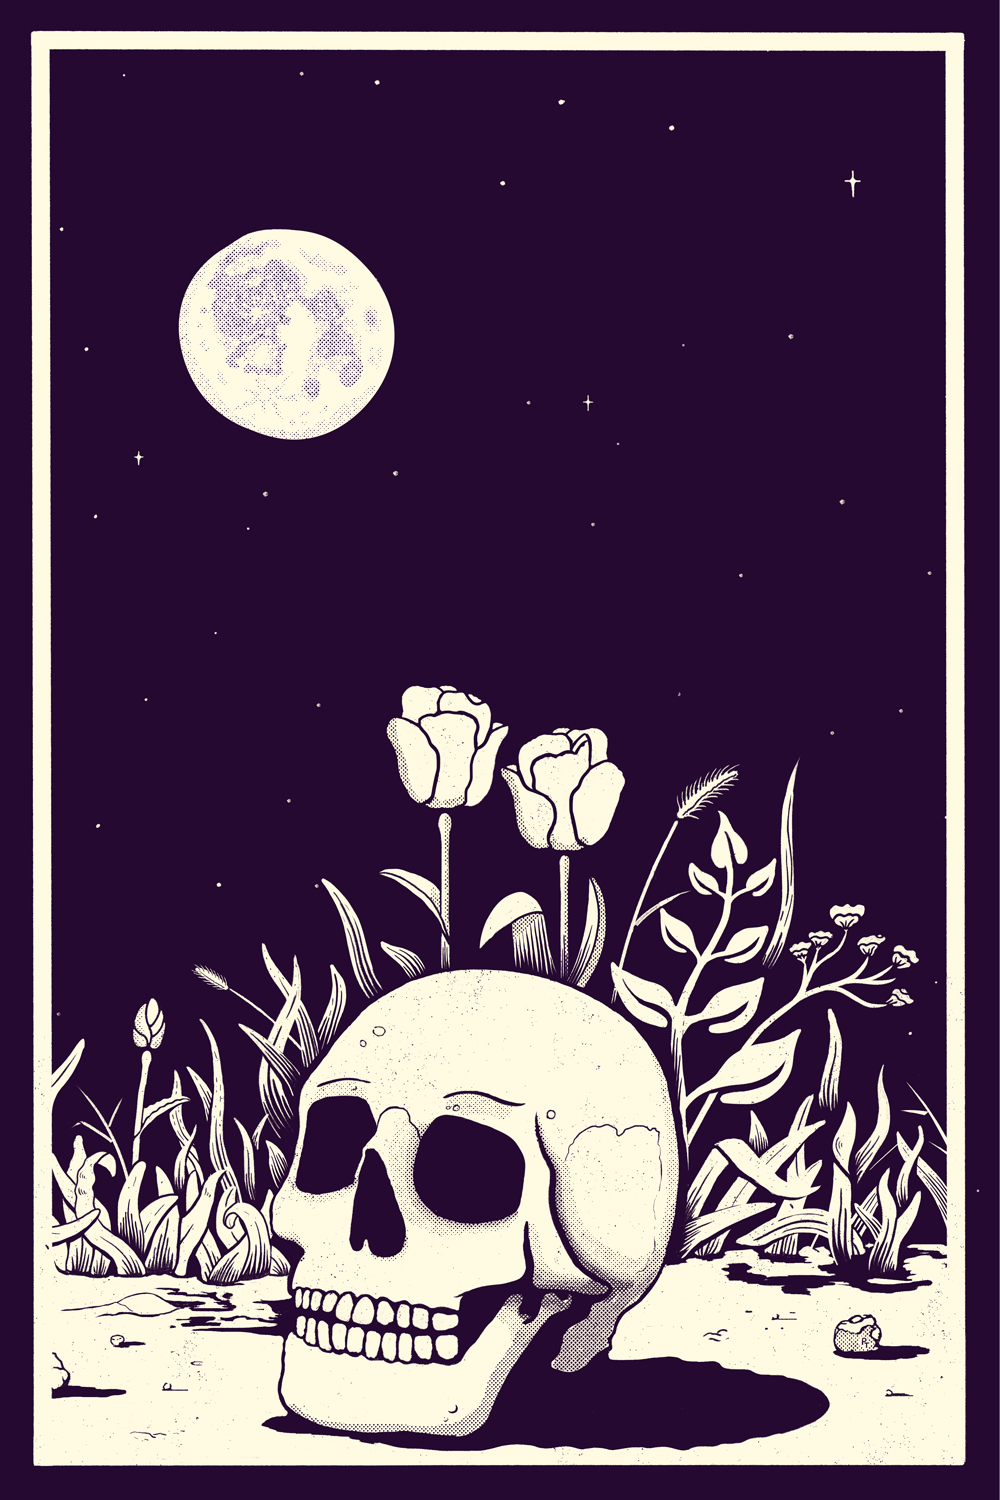 patrick-torres-graphic-deaign-skulls-and-plants.jpg